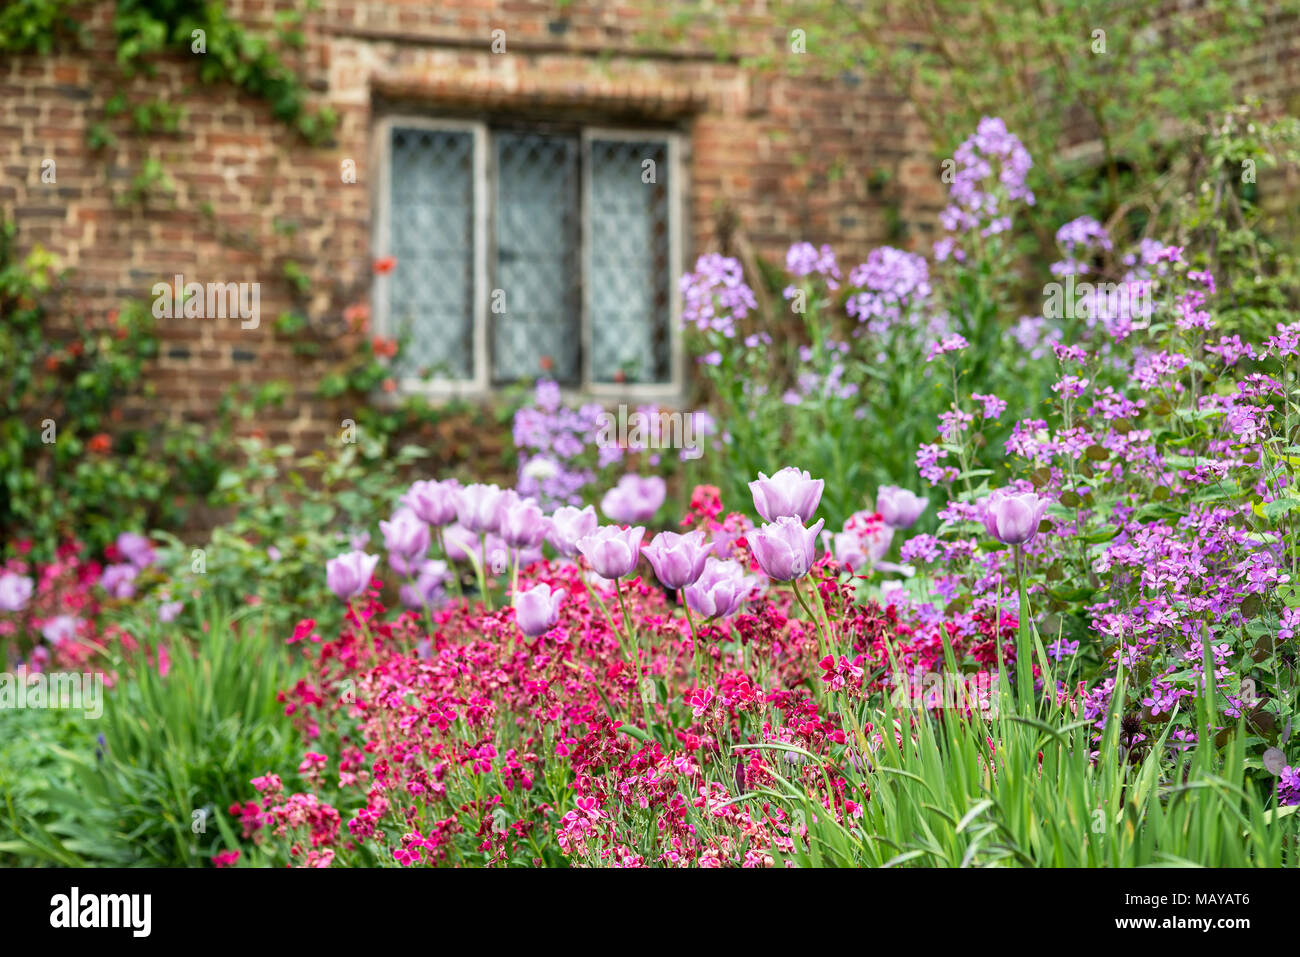 Quintessential English Country Garden Scene Landscape With Fresh